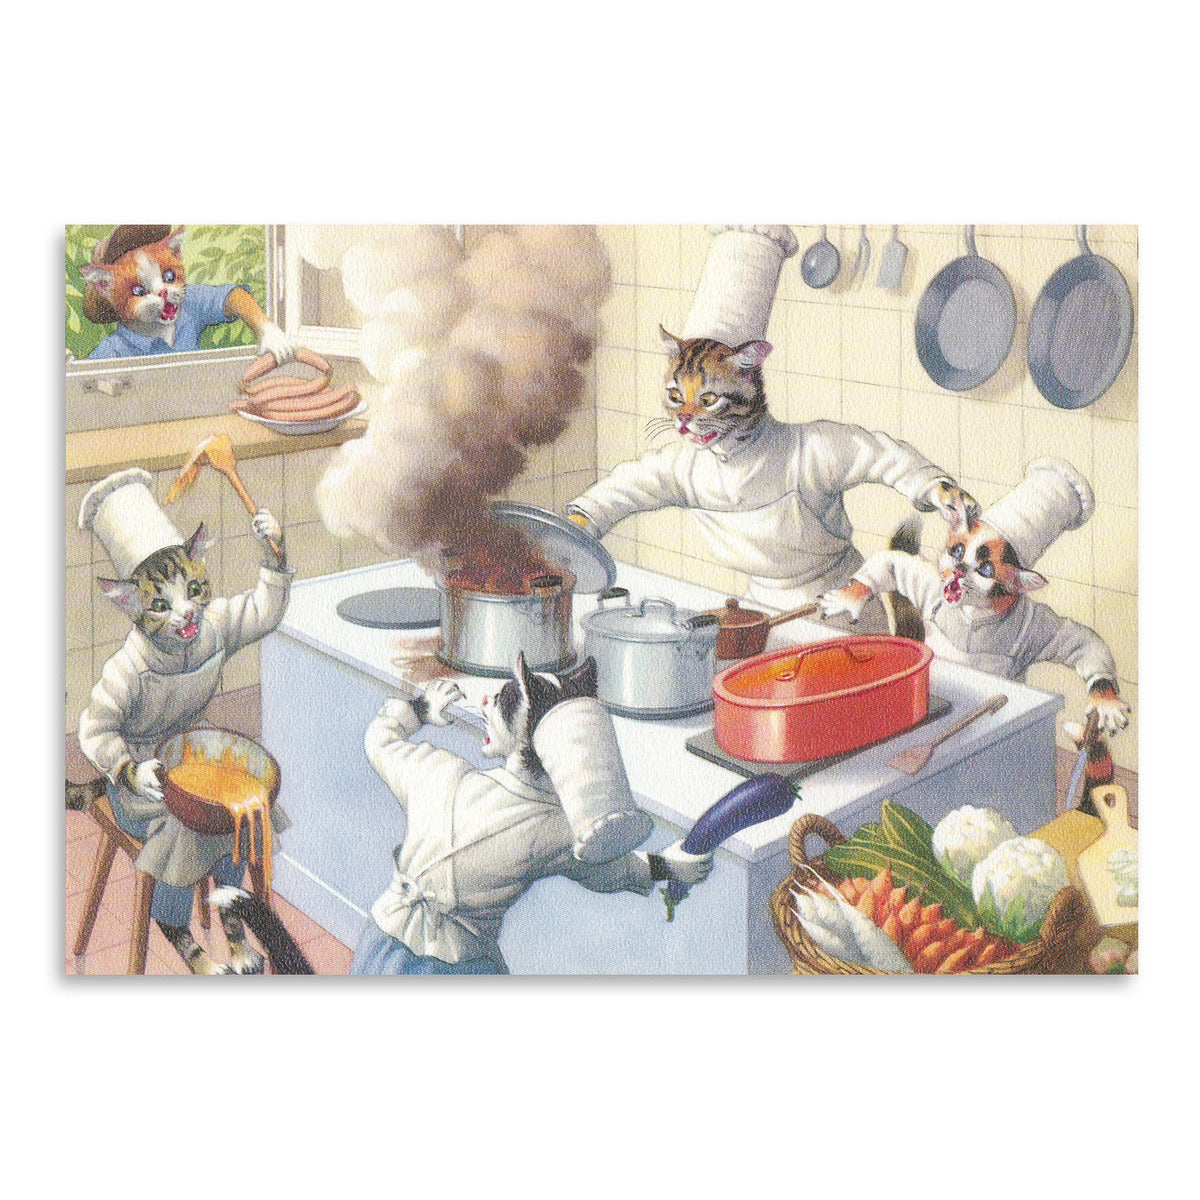 Crazy Cat Chefs In The Kitchen by Found Image Press Art Print - Art Print - Americanflat